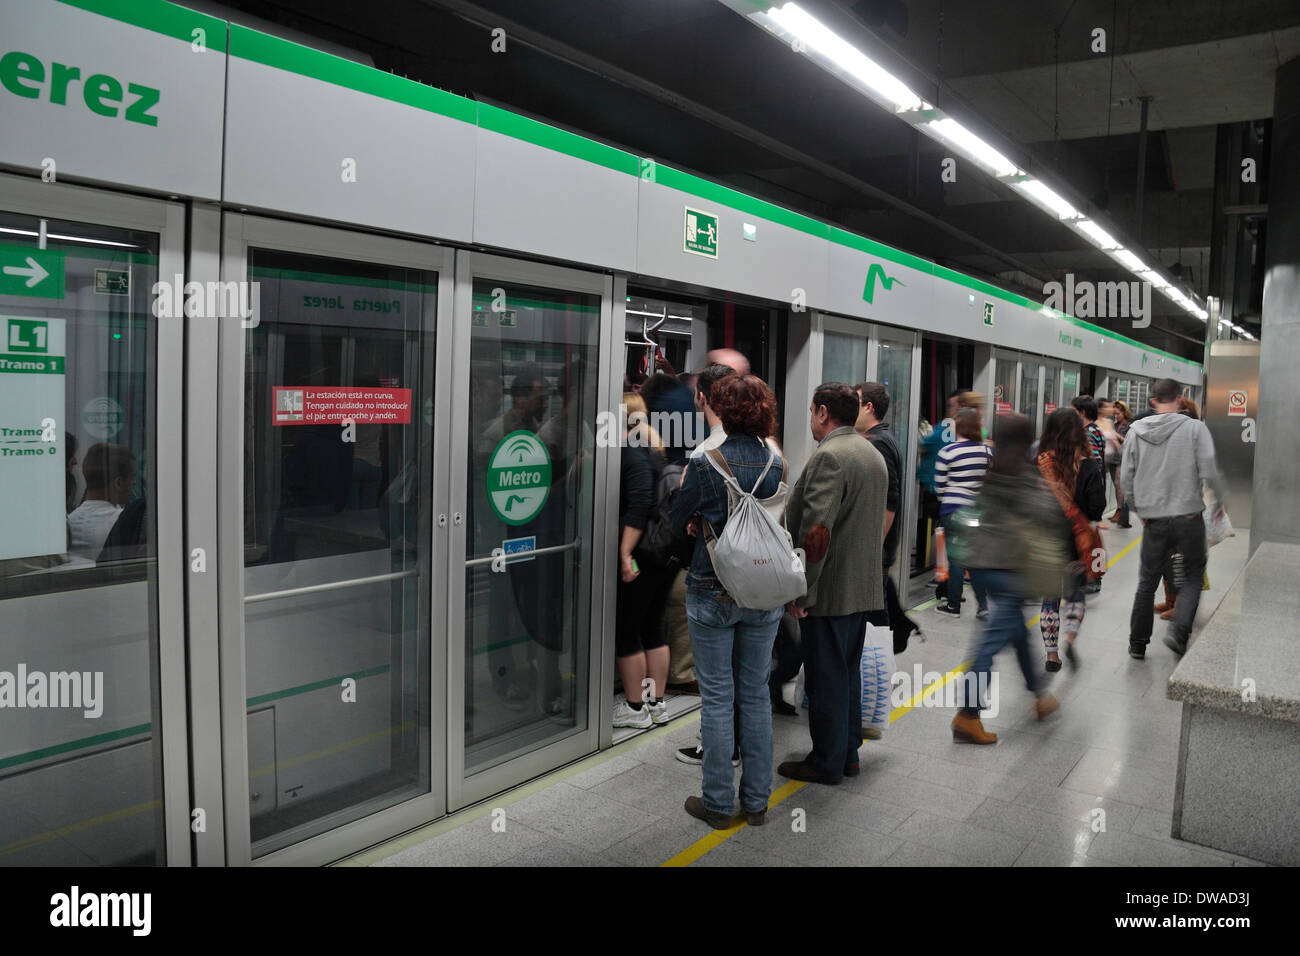 Typical enclosed Metro train platform with a train in the station, Puerta Jerez station, Seville, Spain. - Stock Image